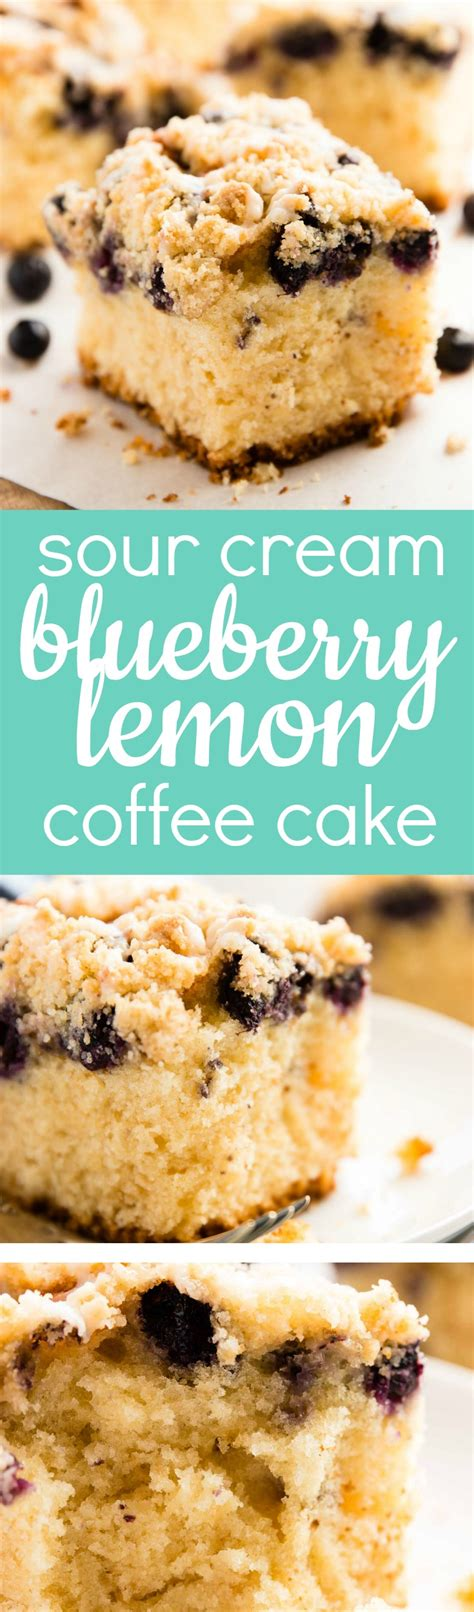 Anyway before i made this i reviewed the comments and agree it would have been a challenge to divide the batter and spread. Sour Cream Lemon Blueberry Coffee Cake Recipe - The best thing to serve unexpected guests! So ...